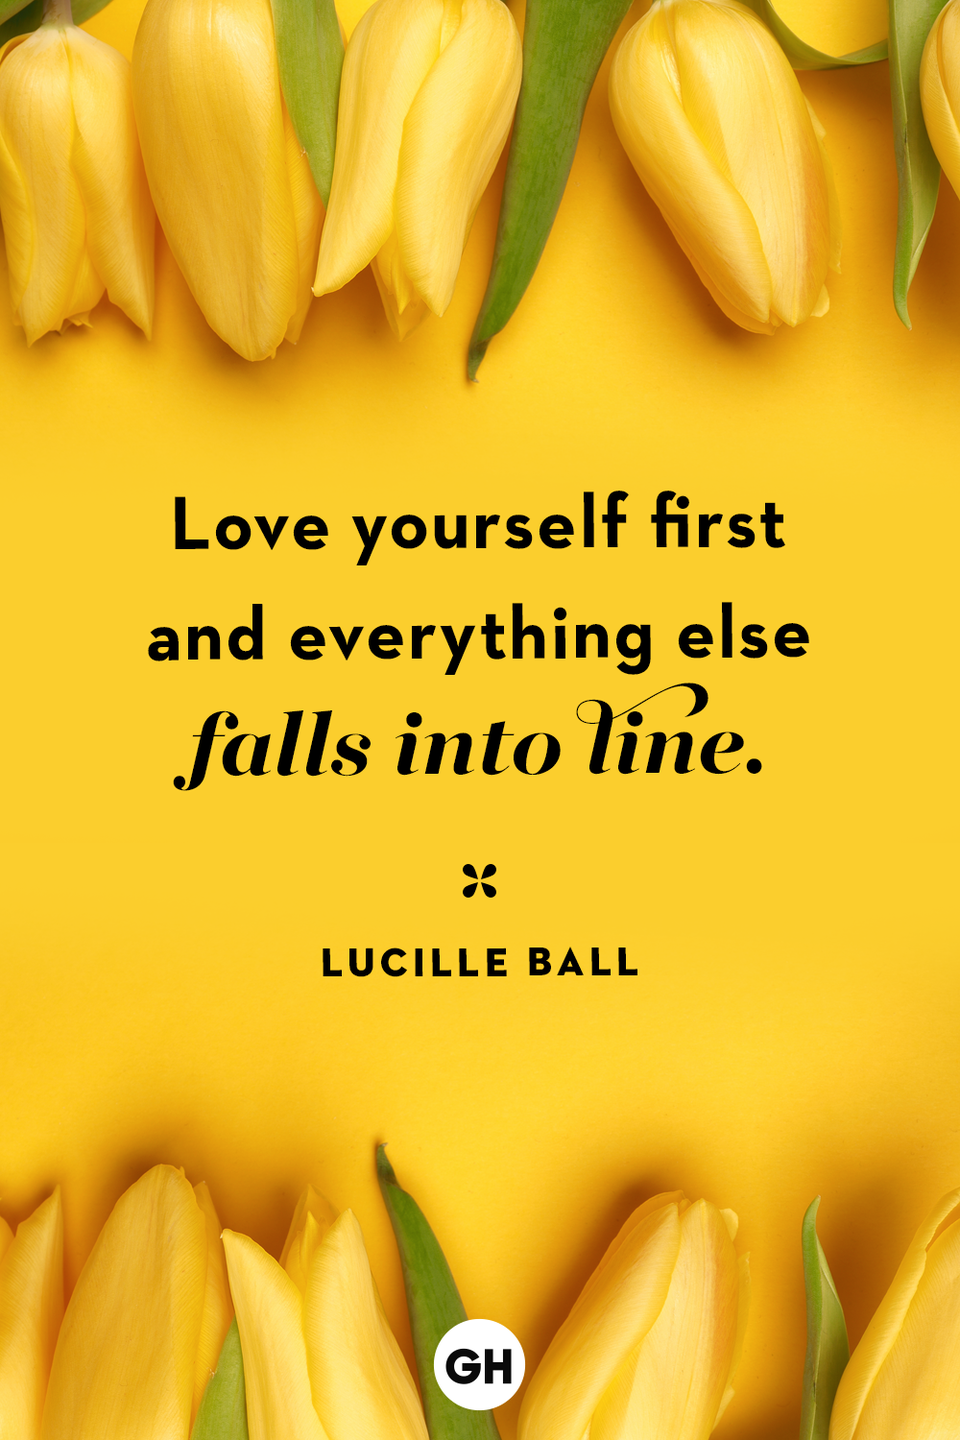 <p>Love yourself first and everything else falls into line.</p>